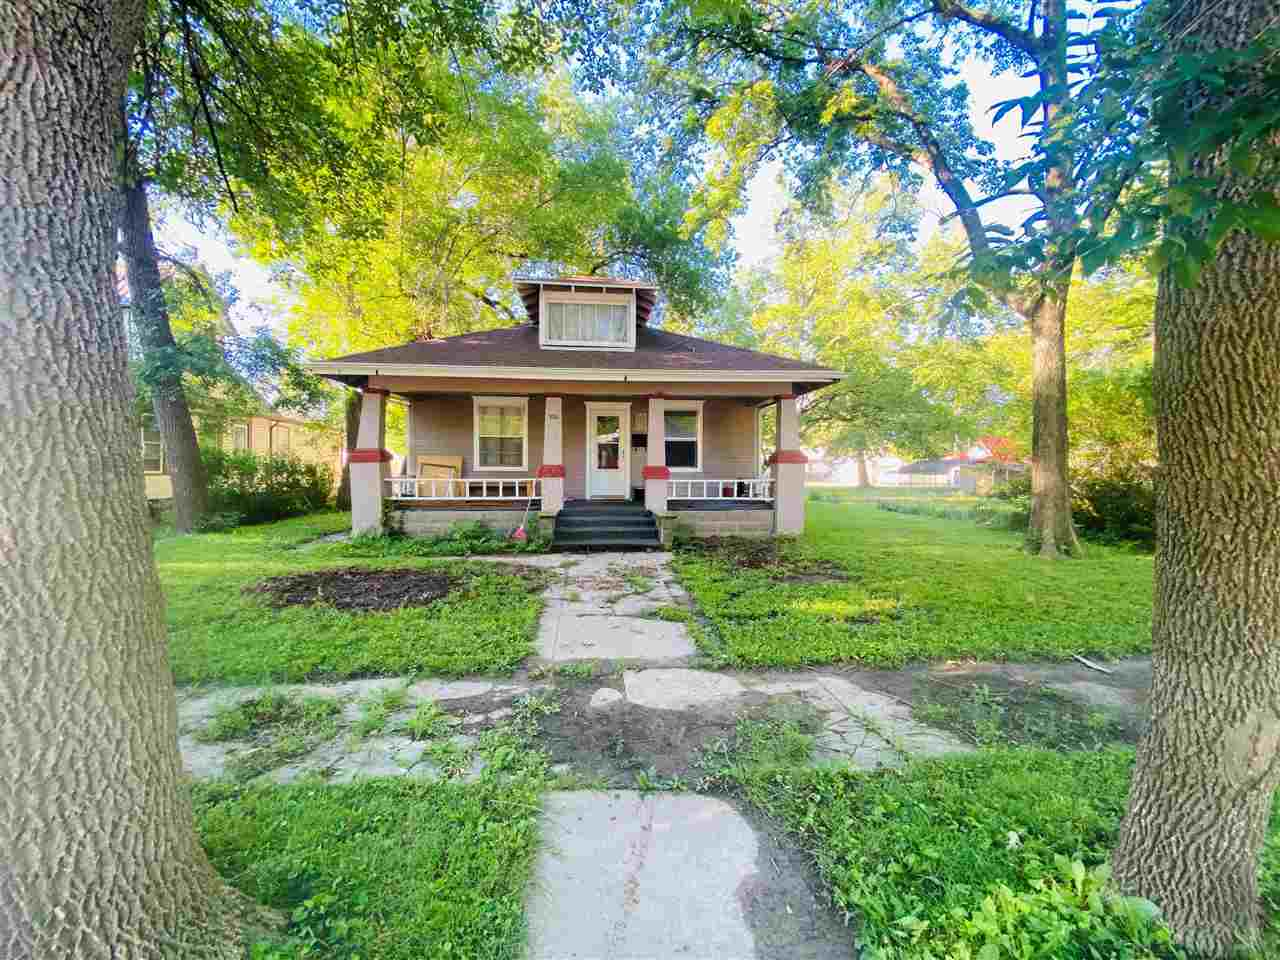 Come and see this charming bungalow on a large shaded lot.  This home features two bedrooms and one bath.  Laundry facilities are located on the main floor right off the kitchen in the enclosed back porch.  Both the heating system and the water heater were replaced in the last 5 years.